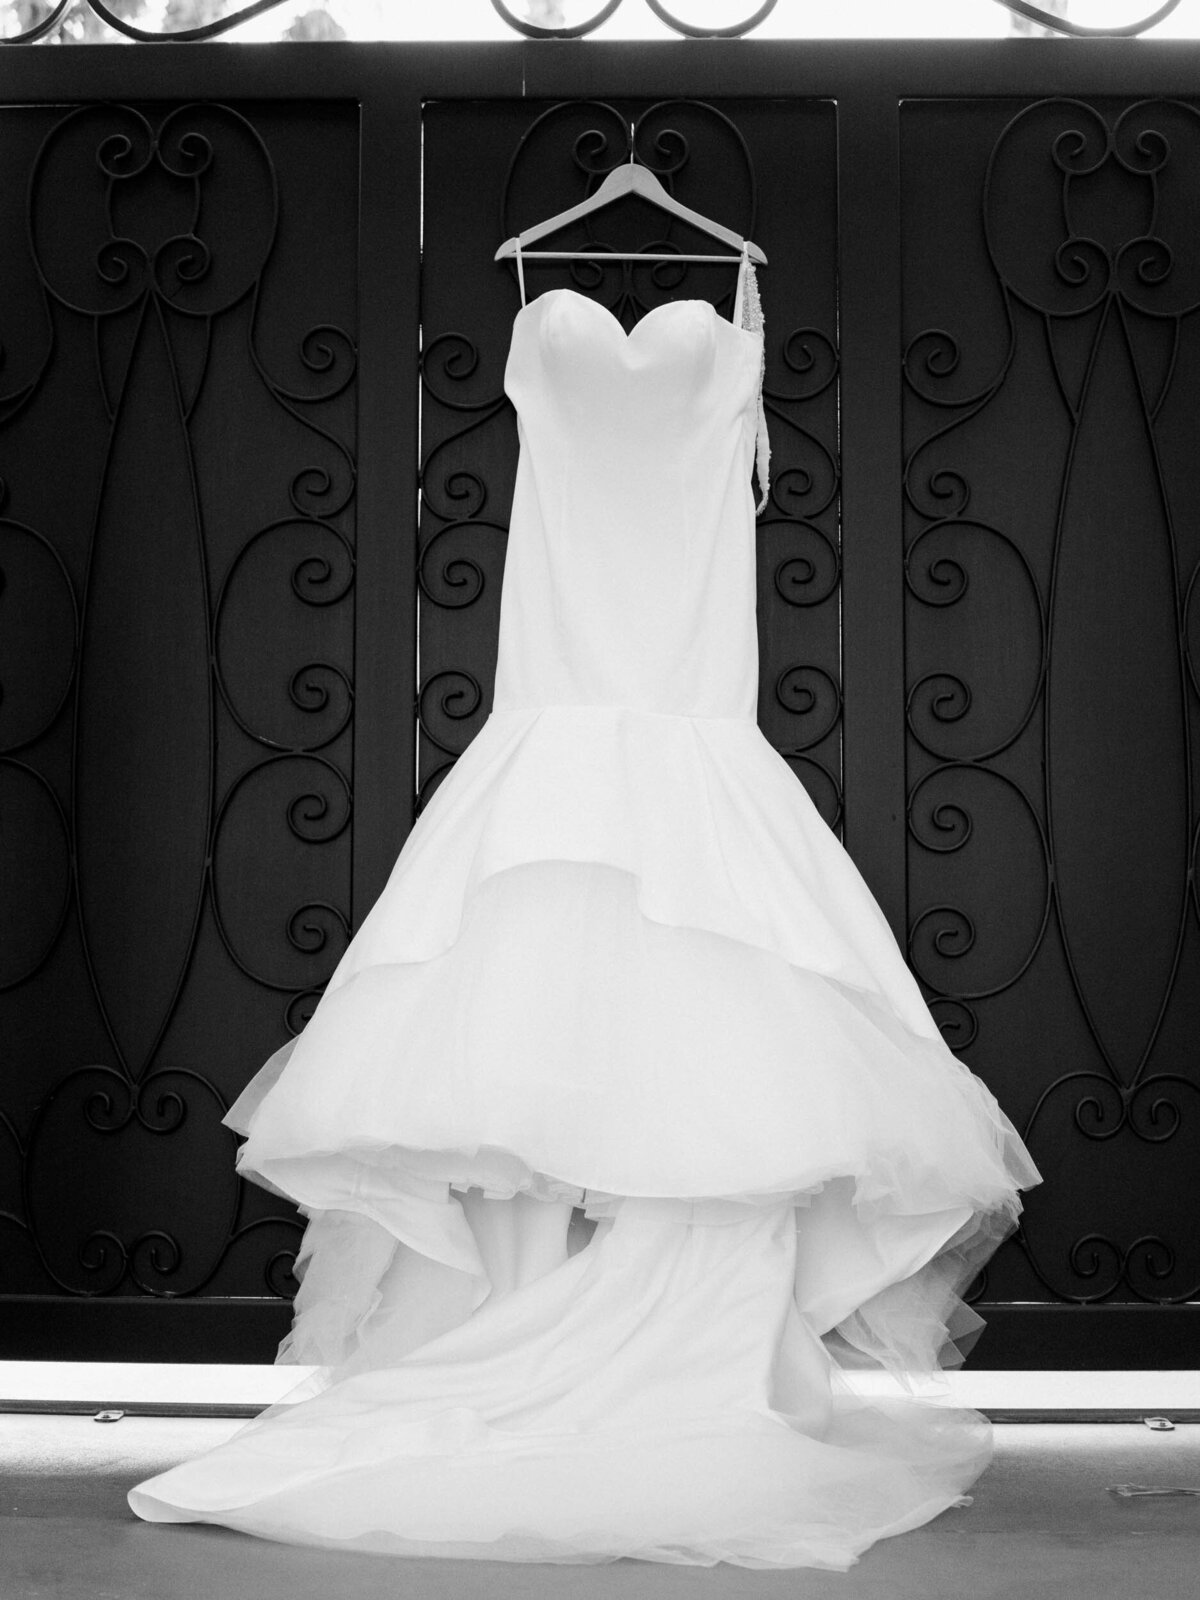 Th Artisan Hotel wedding-Bride's gown-Chloe Darling Photography